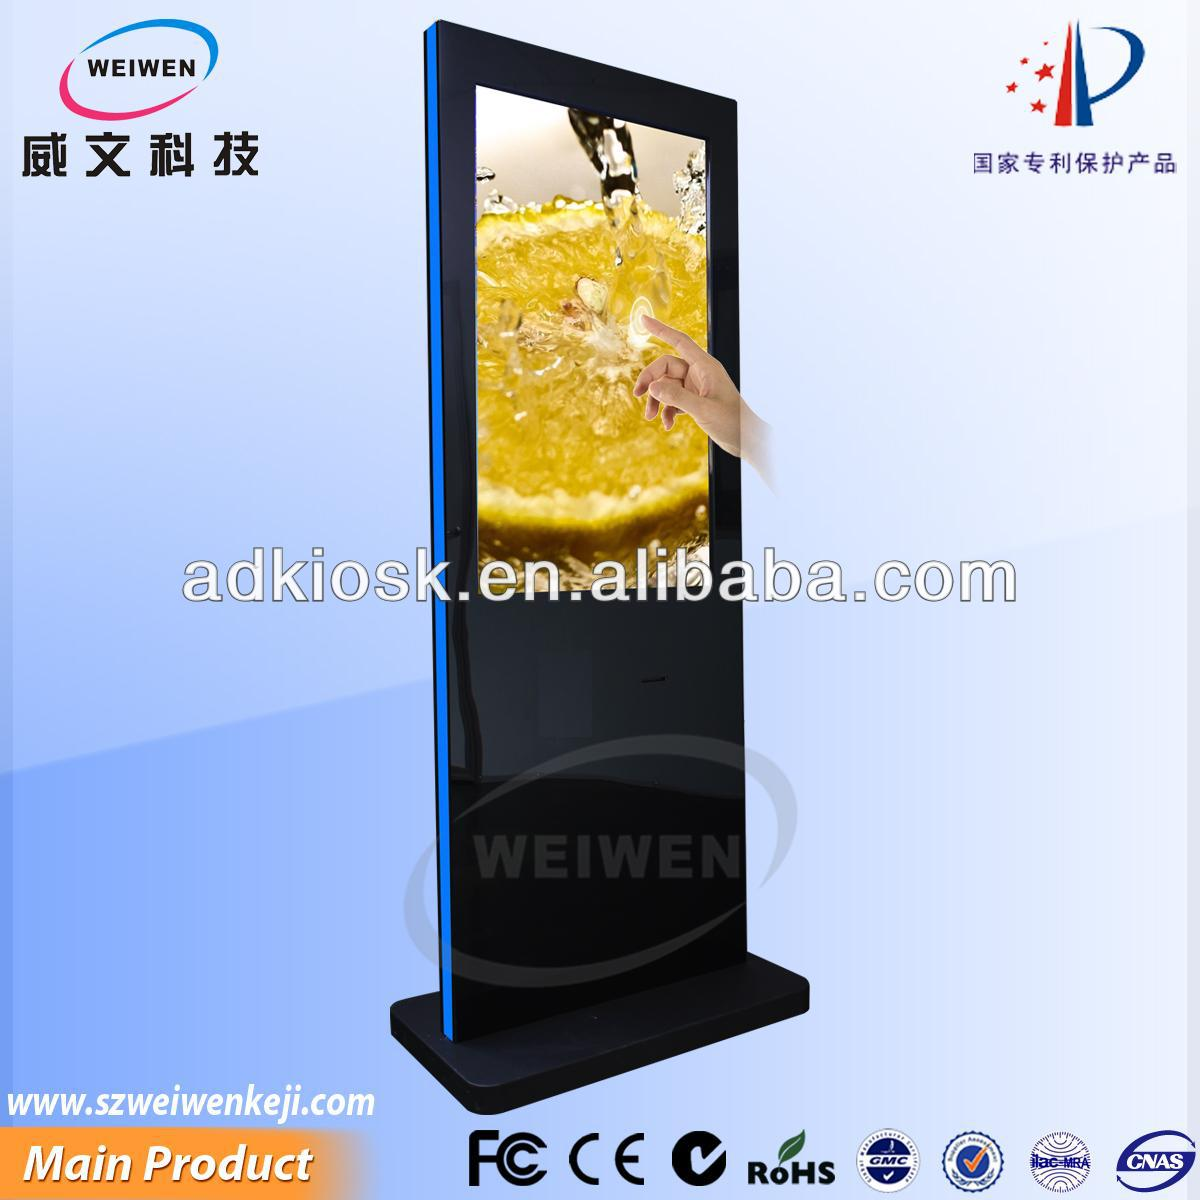 2014 New model ! 42 inch all in one pc Samsung lcd panel dual screen coin-operated kiosk with printer